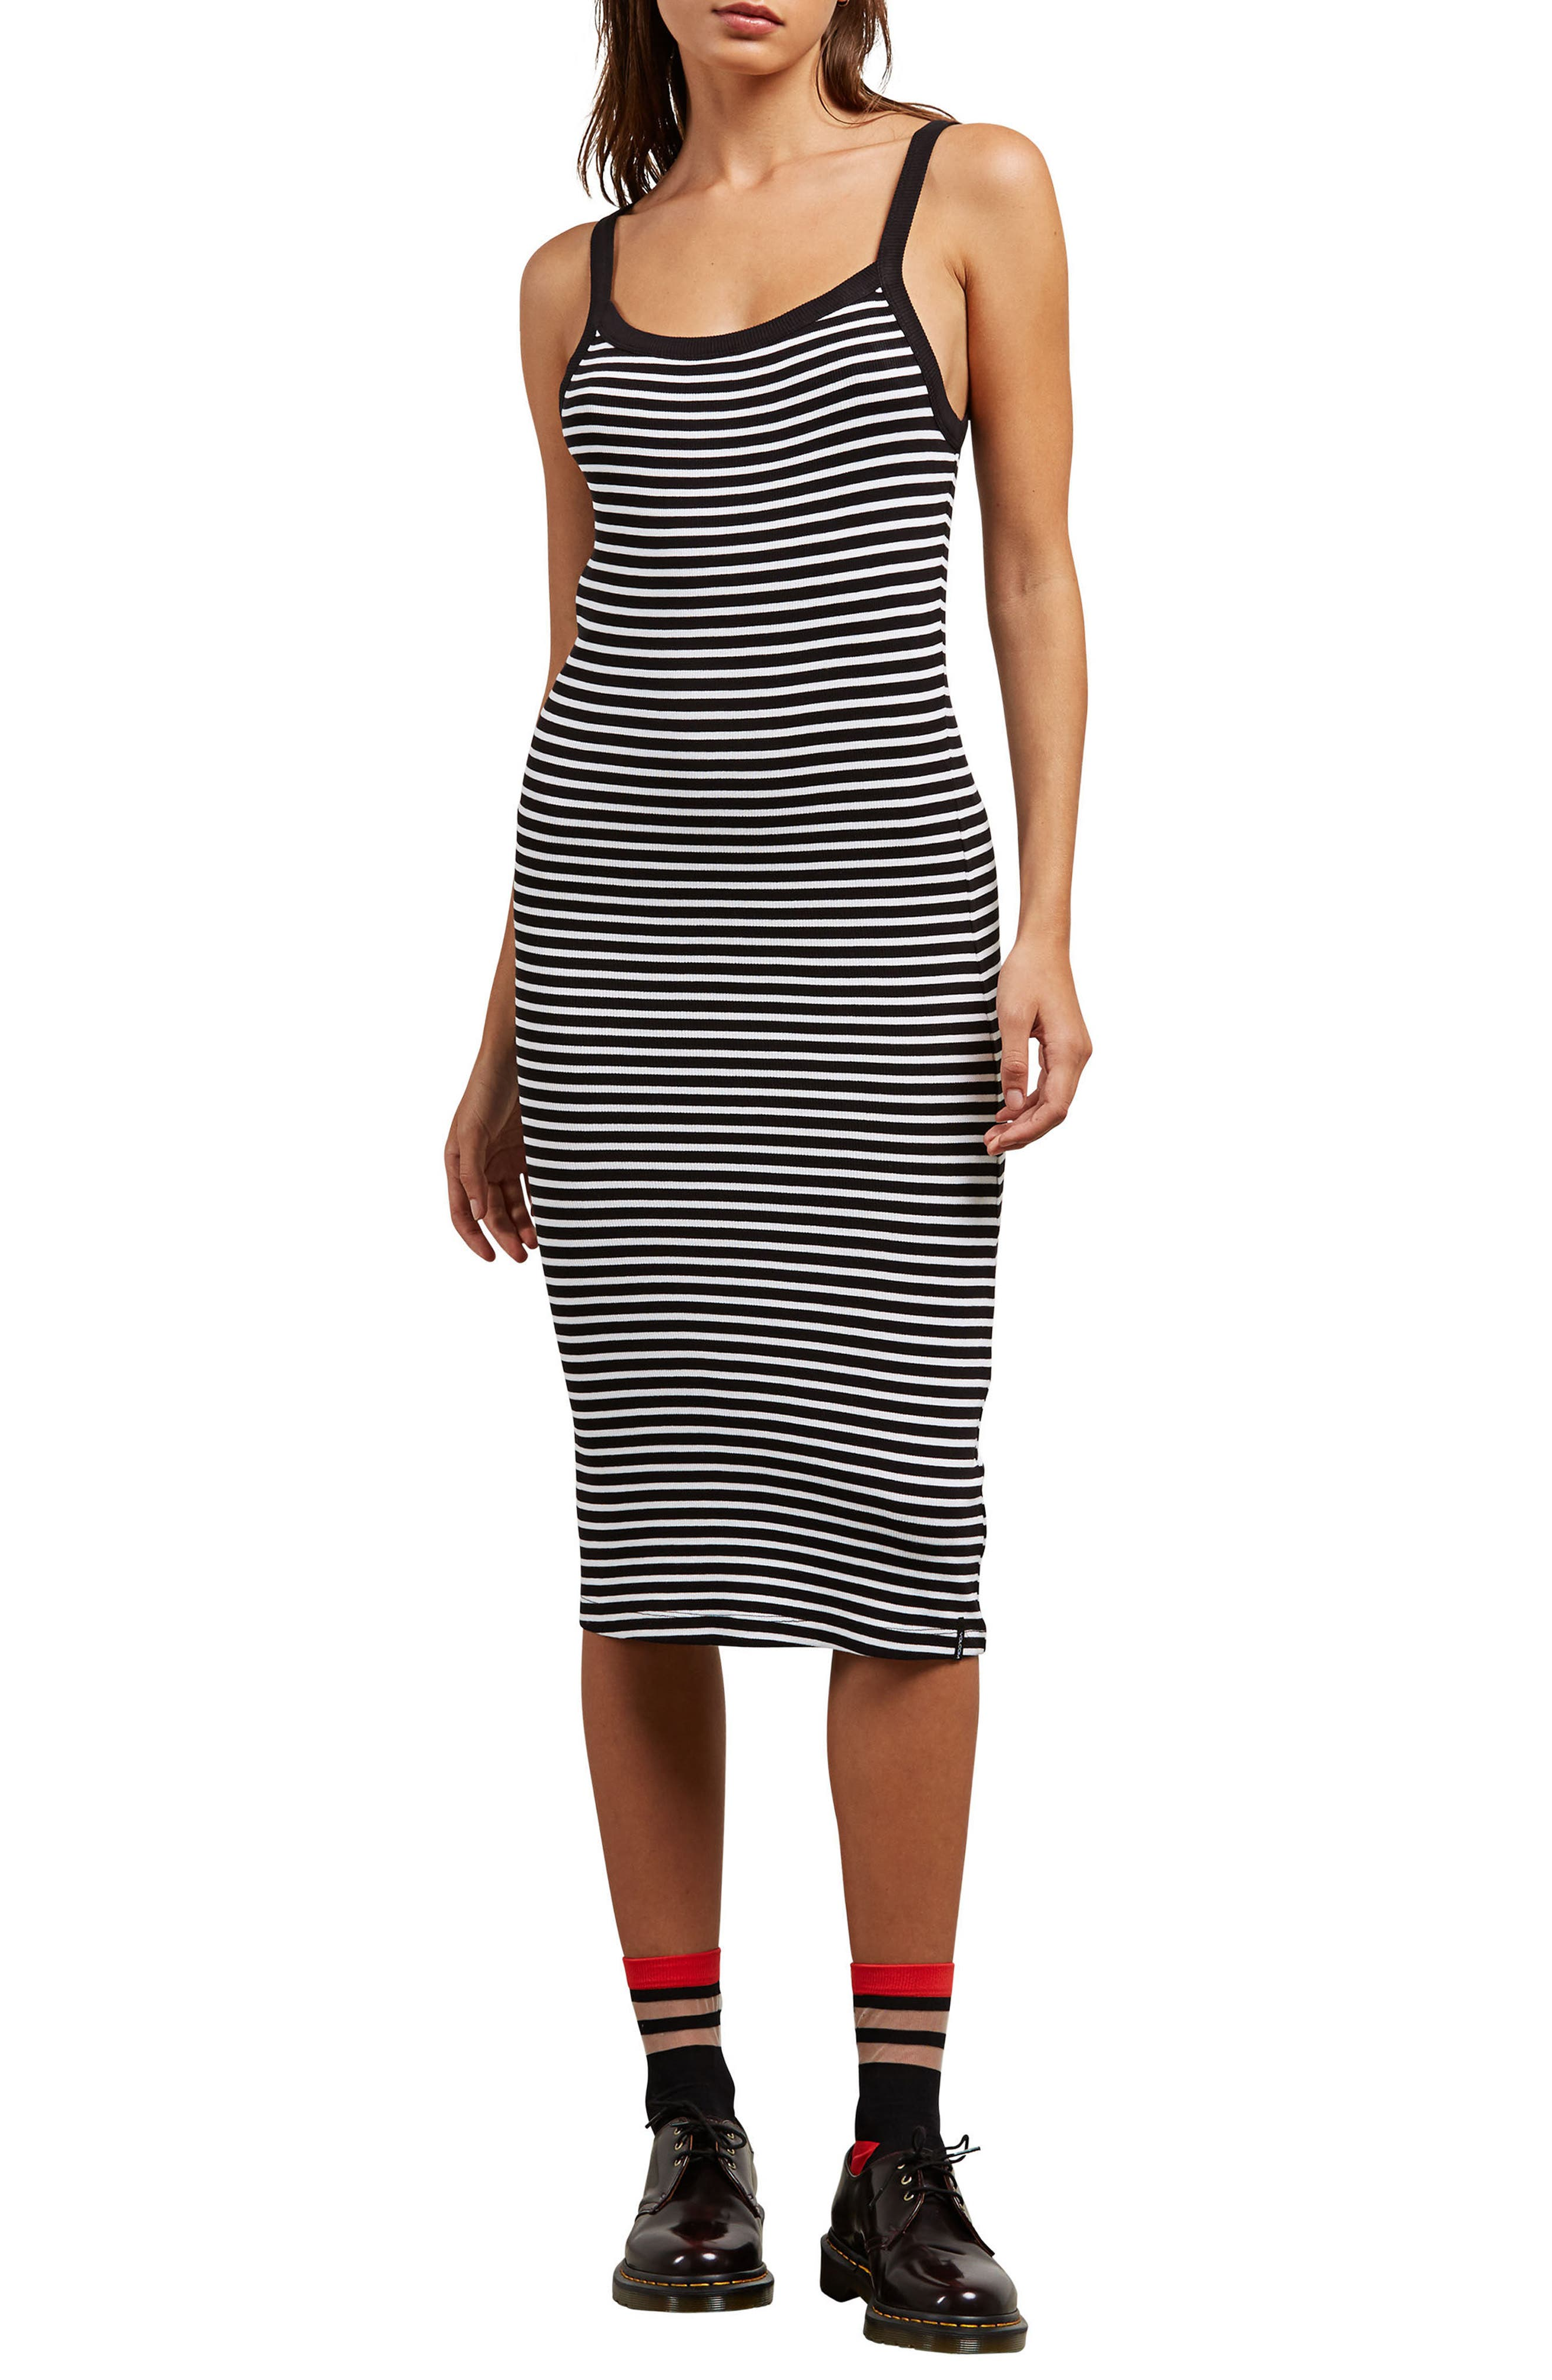 Rave New World Stripe Dress,                         Main,                         color, 001